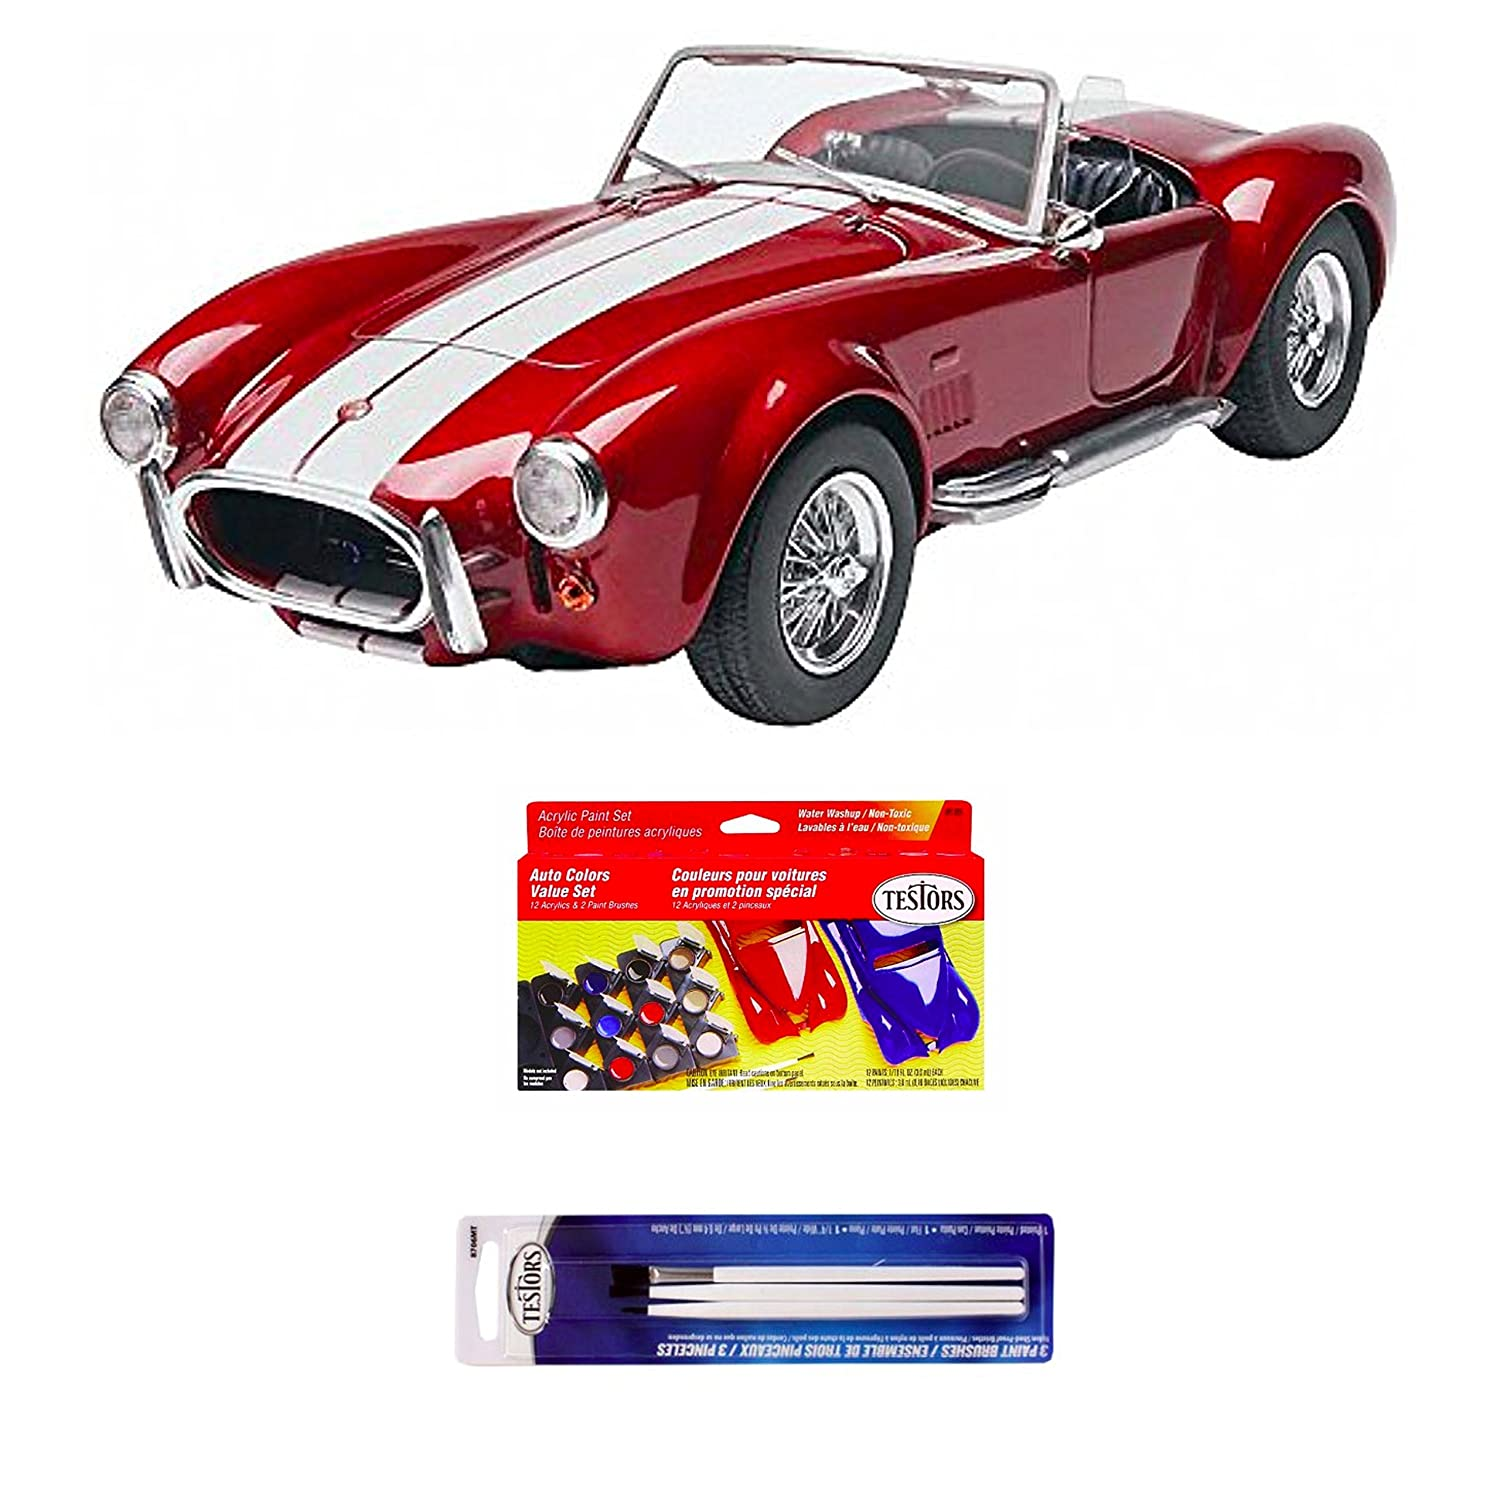 Amazon.com: Bundle Includes 3 Items - Revell Monogram Shelby ...